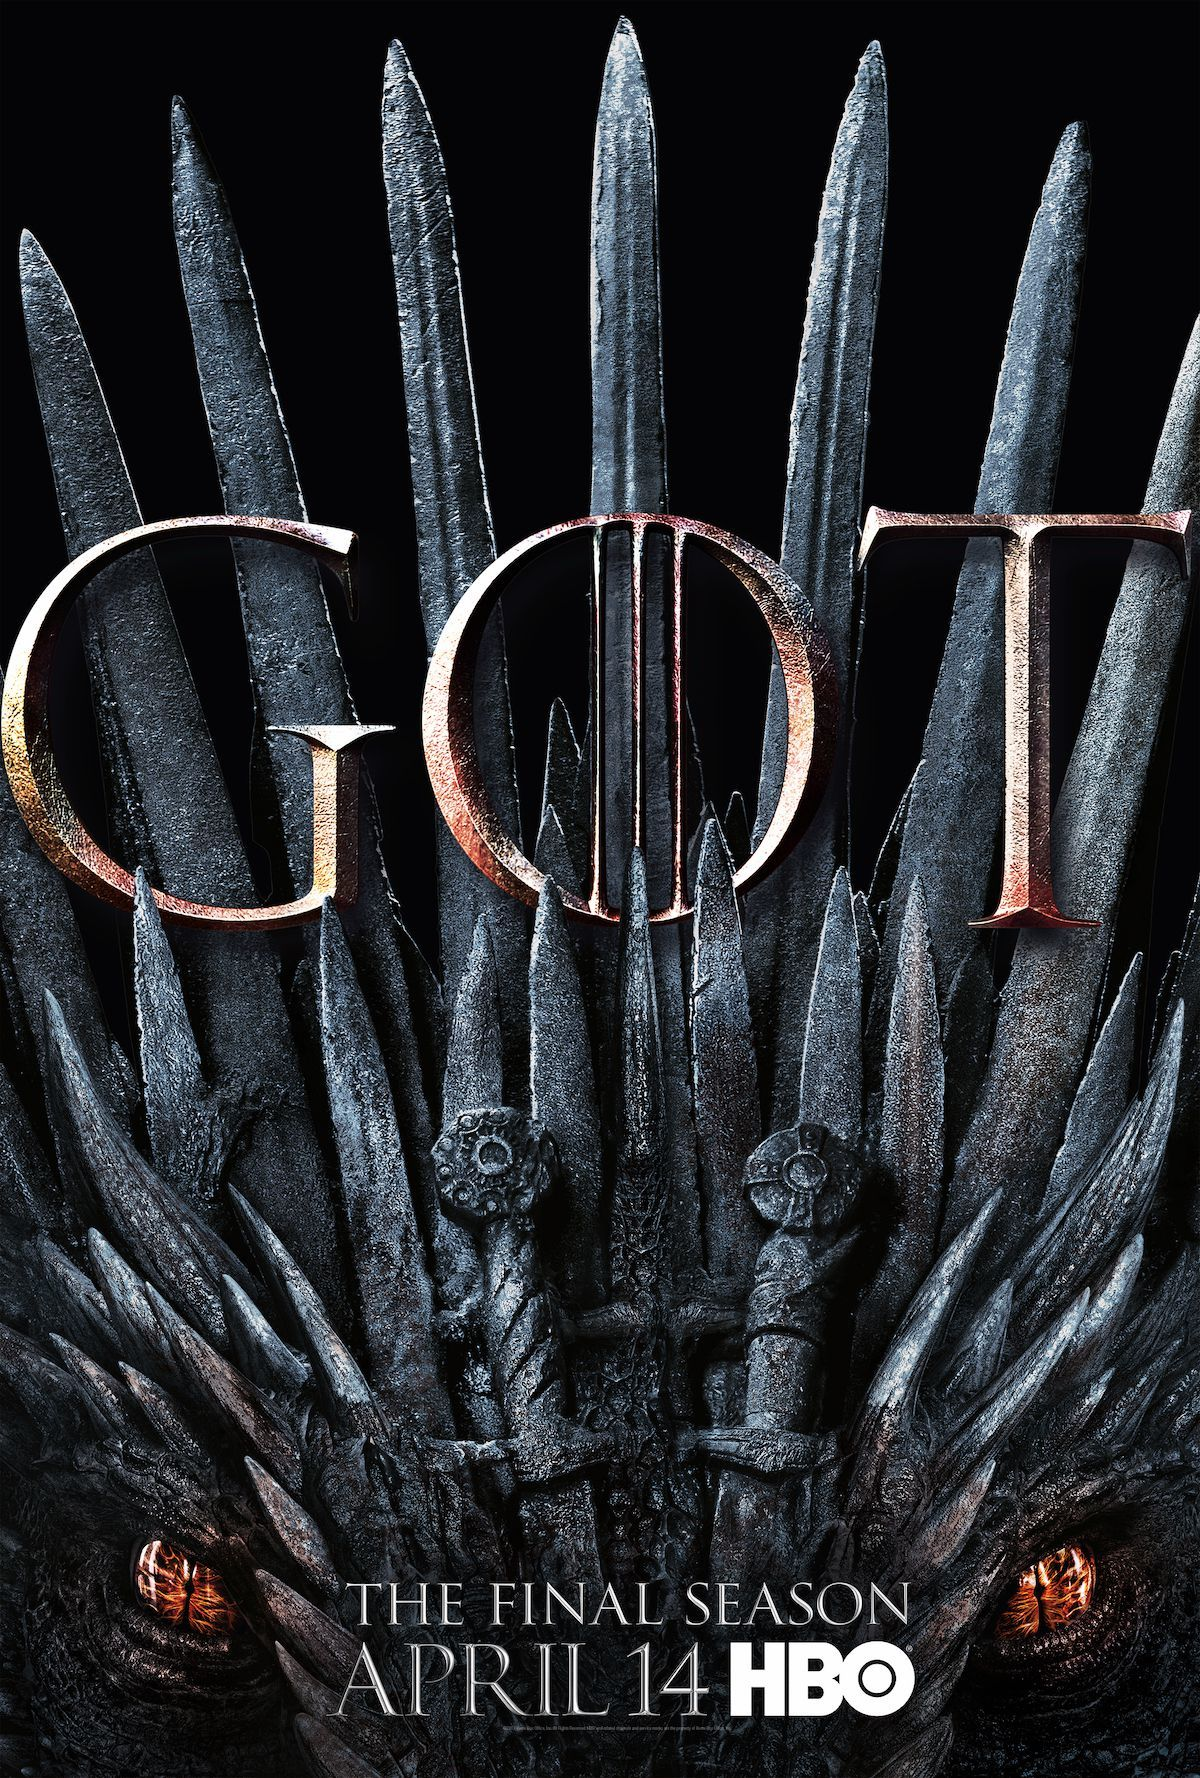 Game Of Throne Saison 8 Telechargement : throne, saison, telechargement, Thrones, Season, Episode, Download, Fasrfreaks